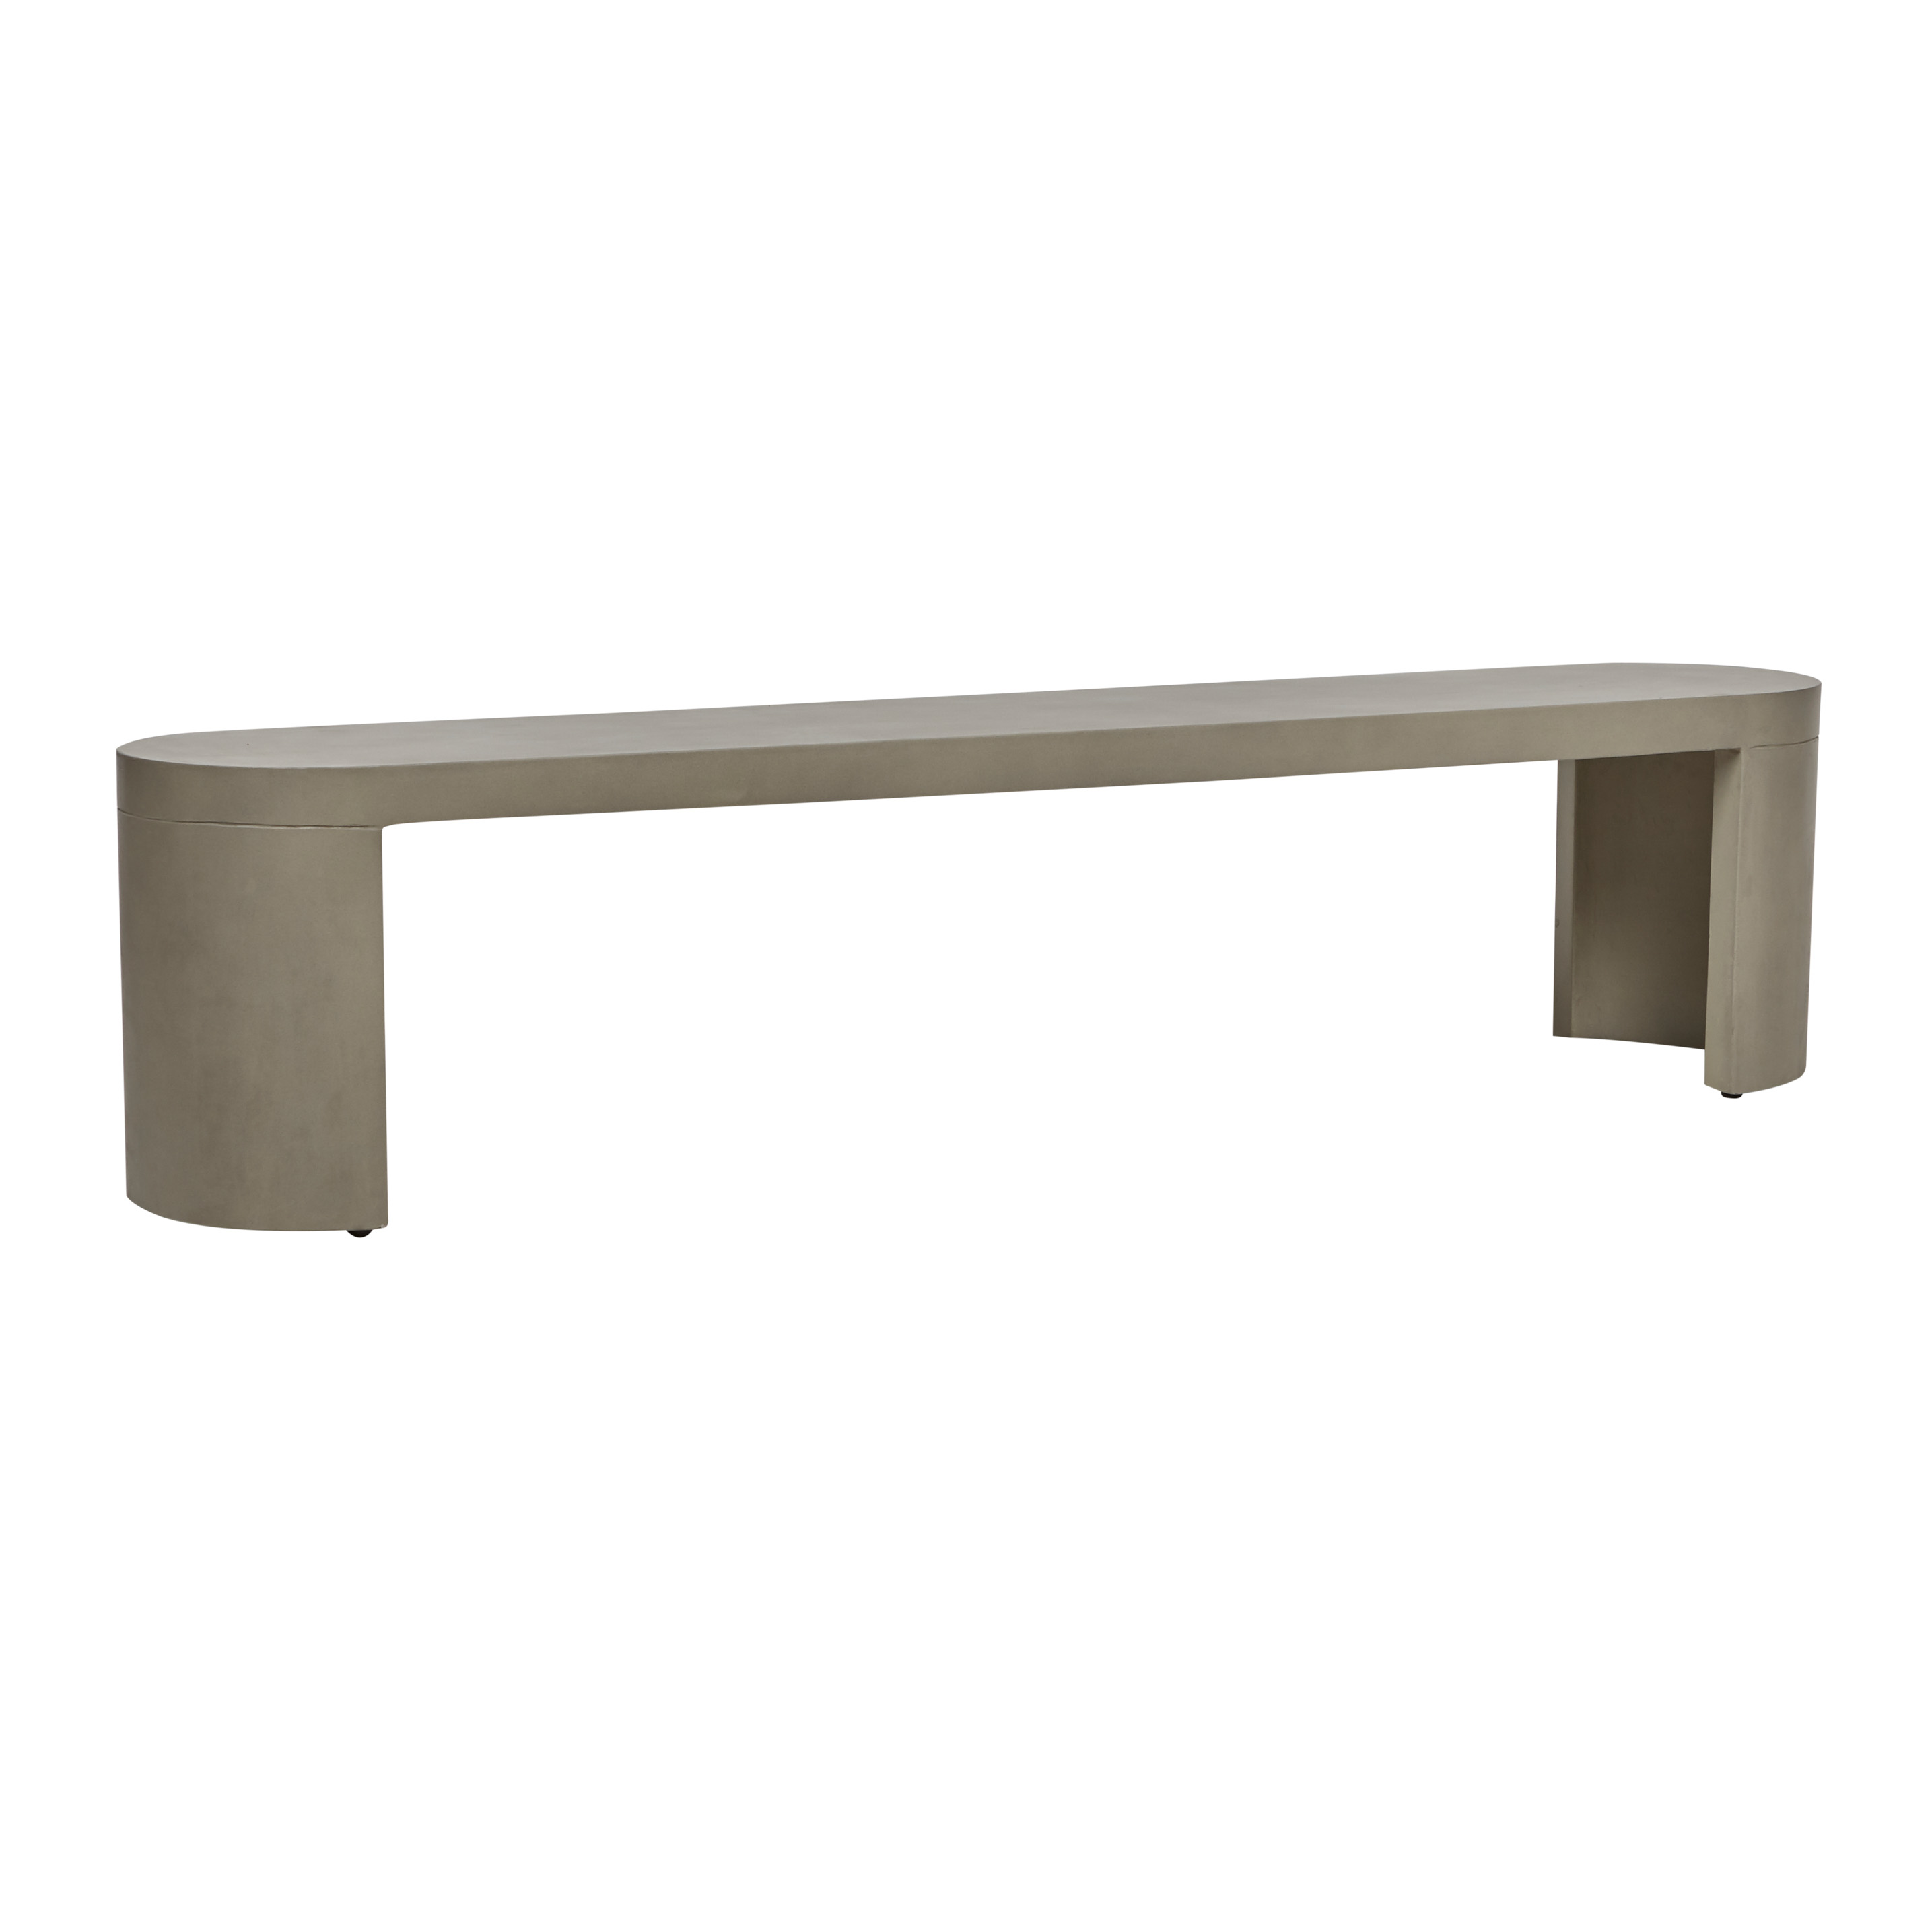 Furniture Hero-Images Dining-Chairs-Benches-and-Stools ossa-concrete-bench-02